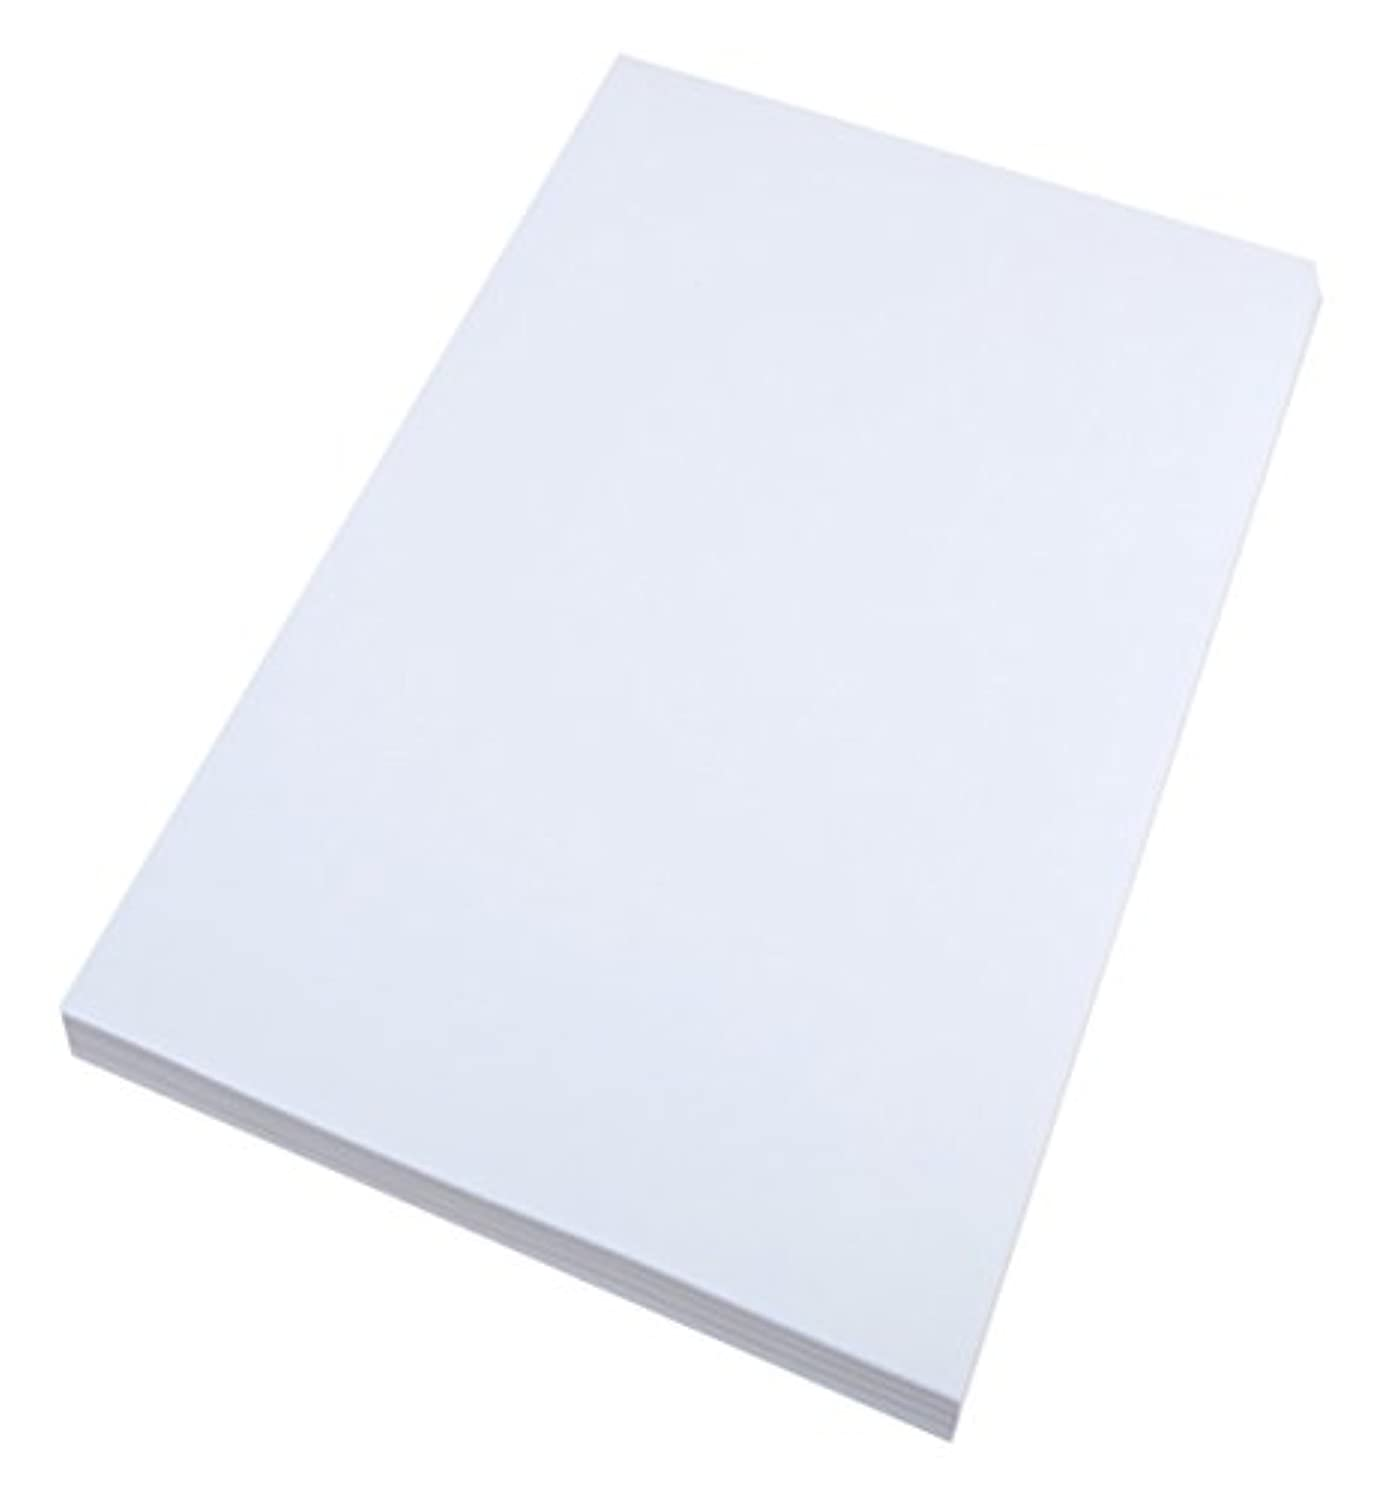 House of Card & Paper A2 250 GSM Card - White (Pack of 50 Sheets)